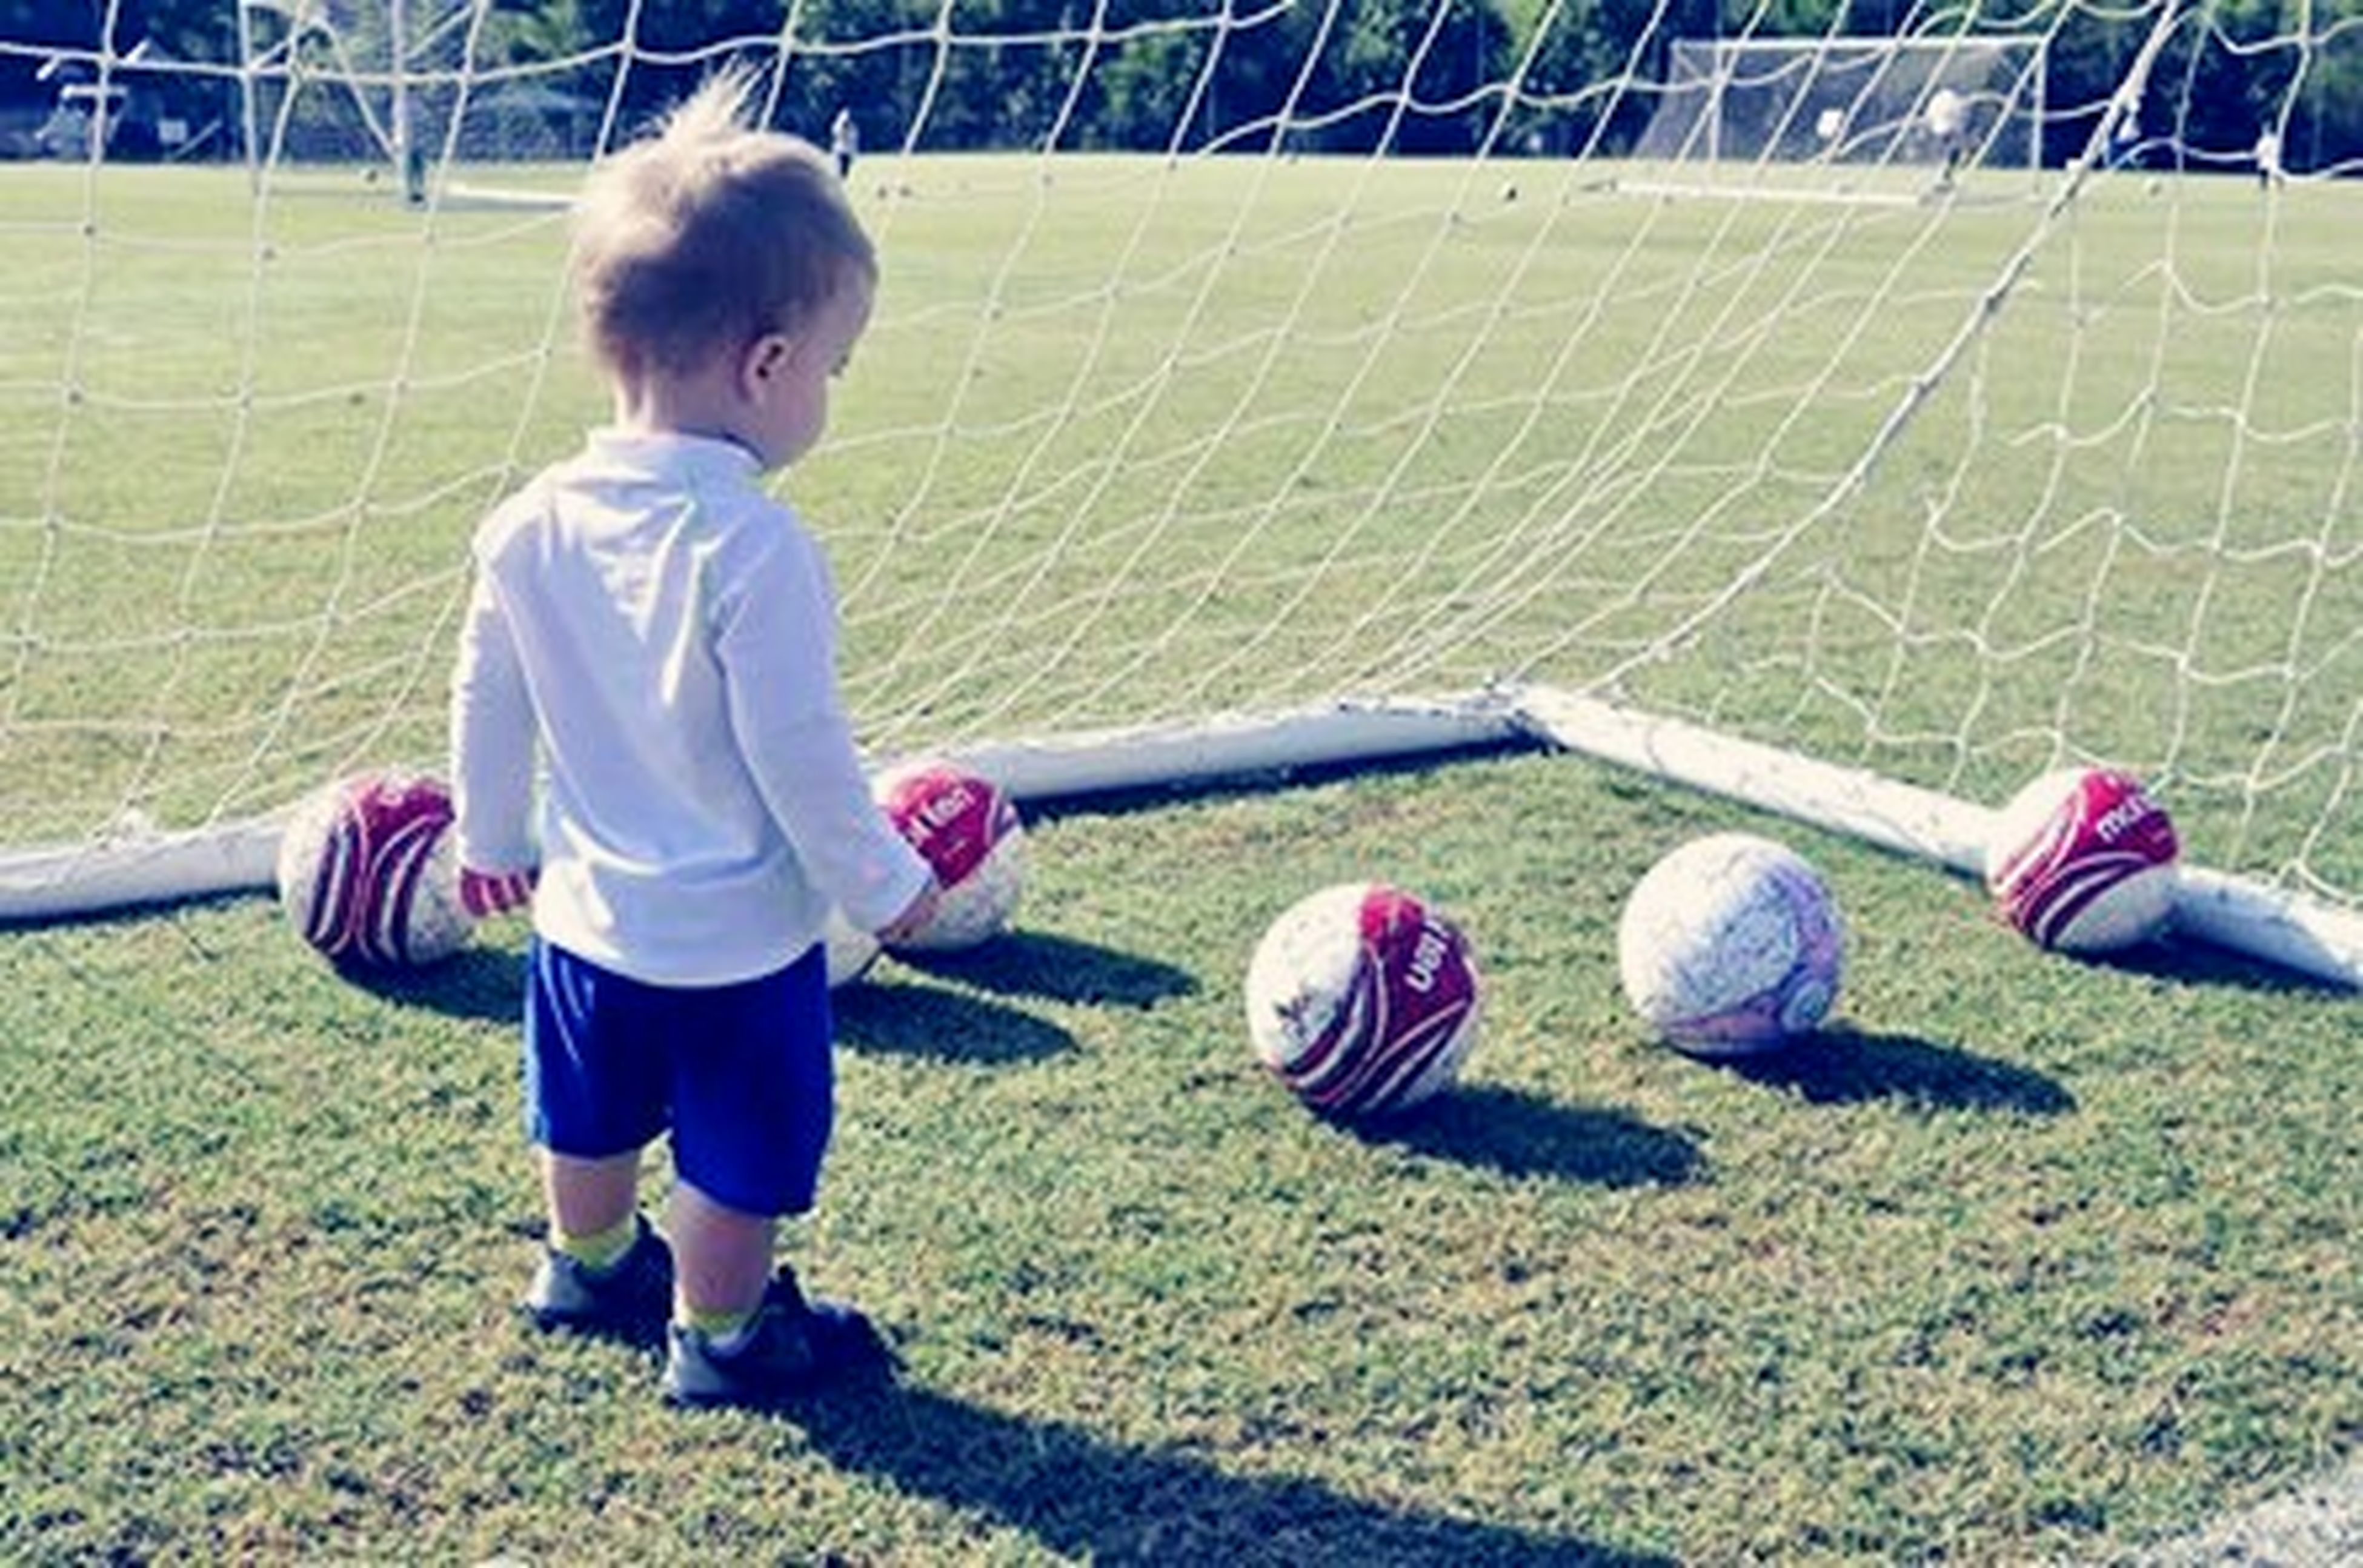 childhood, boys, elementary age, grass, girls, lifestyles, innocence, full length, casual clothing, leisure activity, cute, playing, playful, toddler, park - man made space, high angle view, day